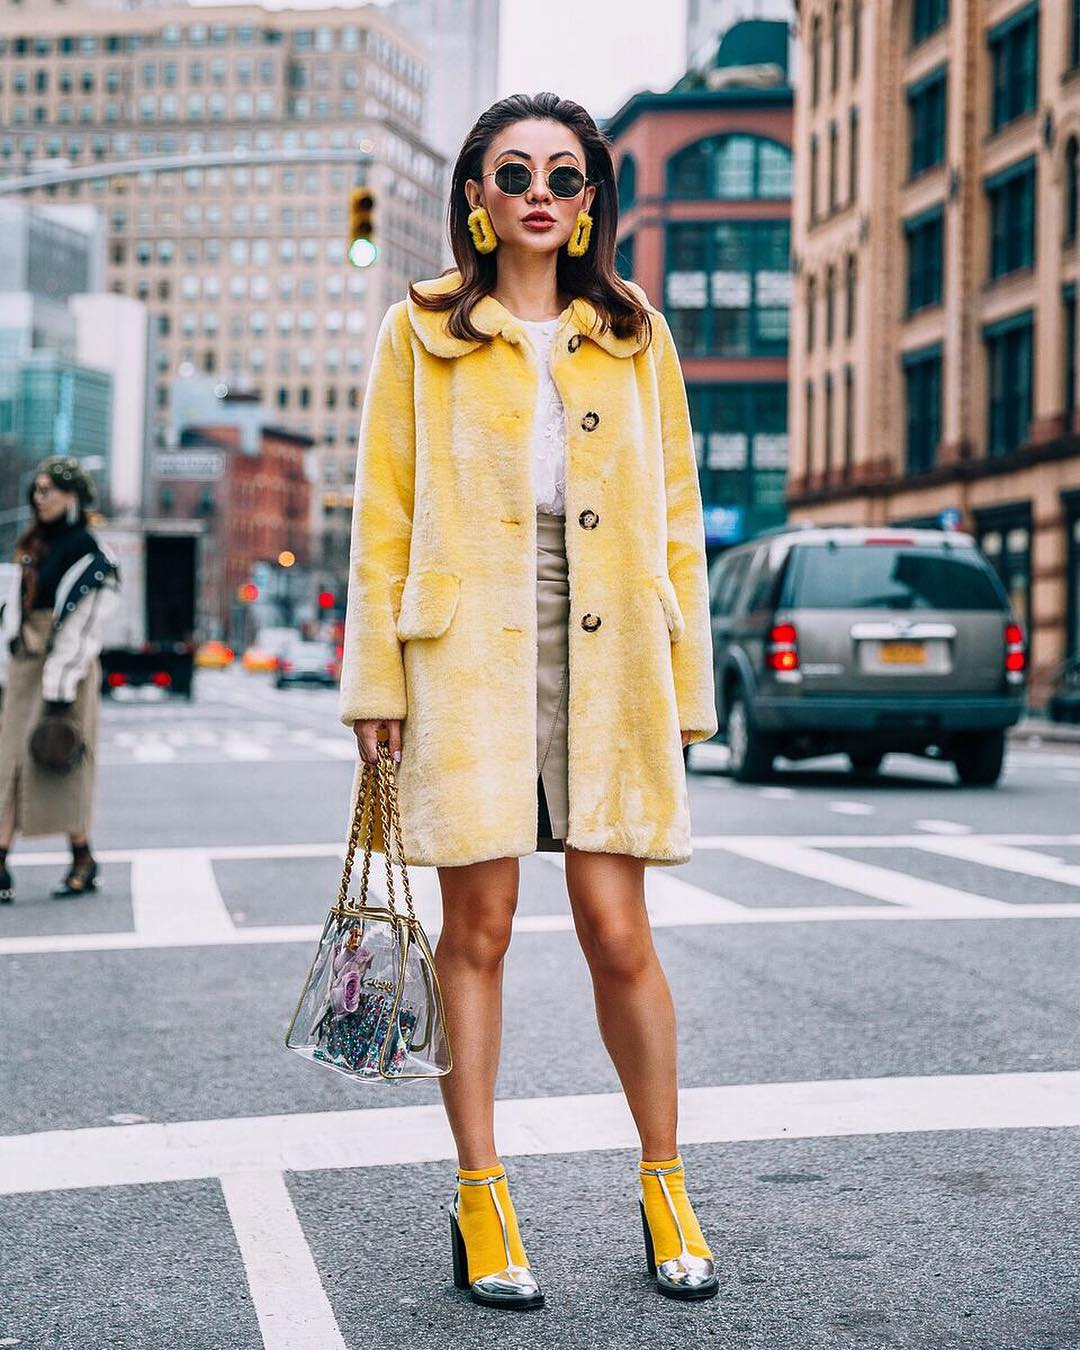 Retro fall OOTD: pastel yellow fur coat and silver heels with yellow socks 2021